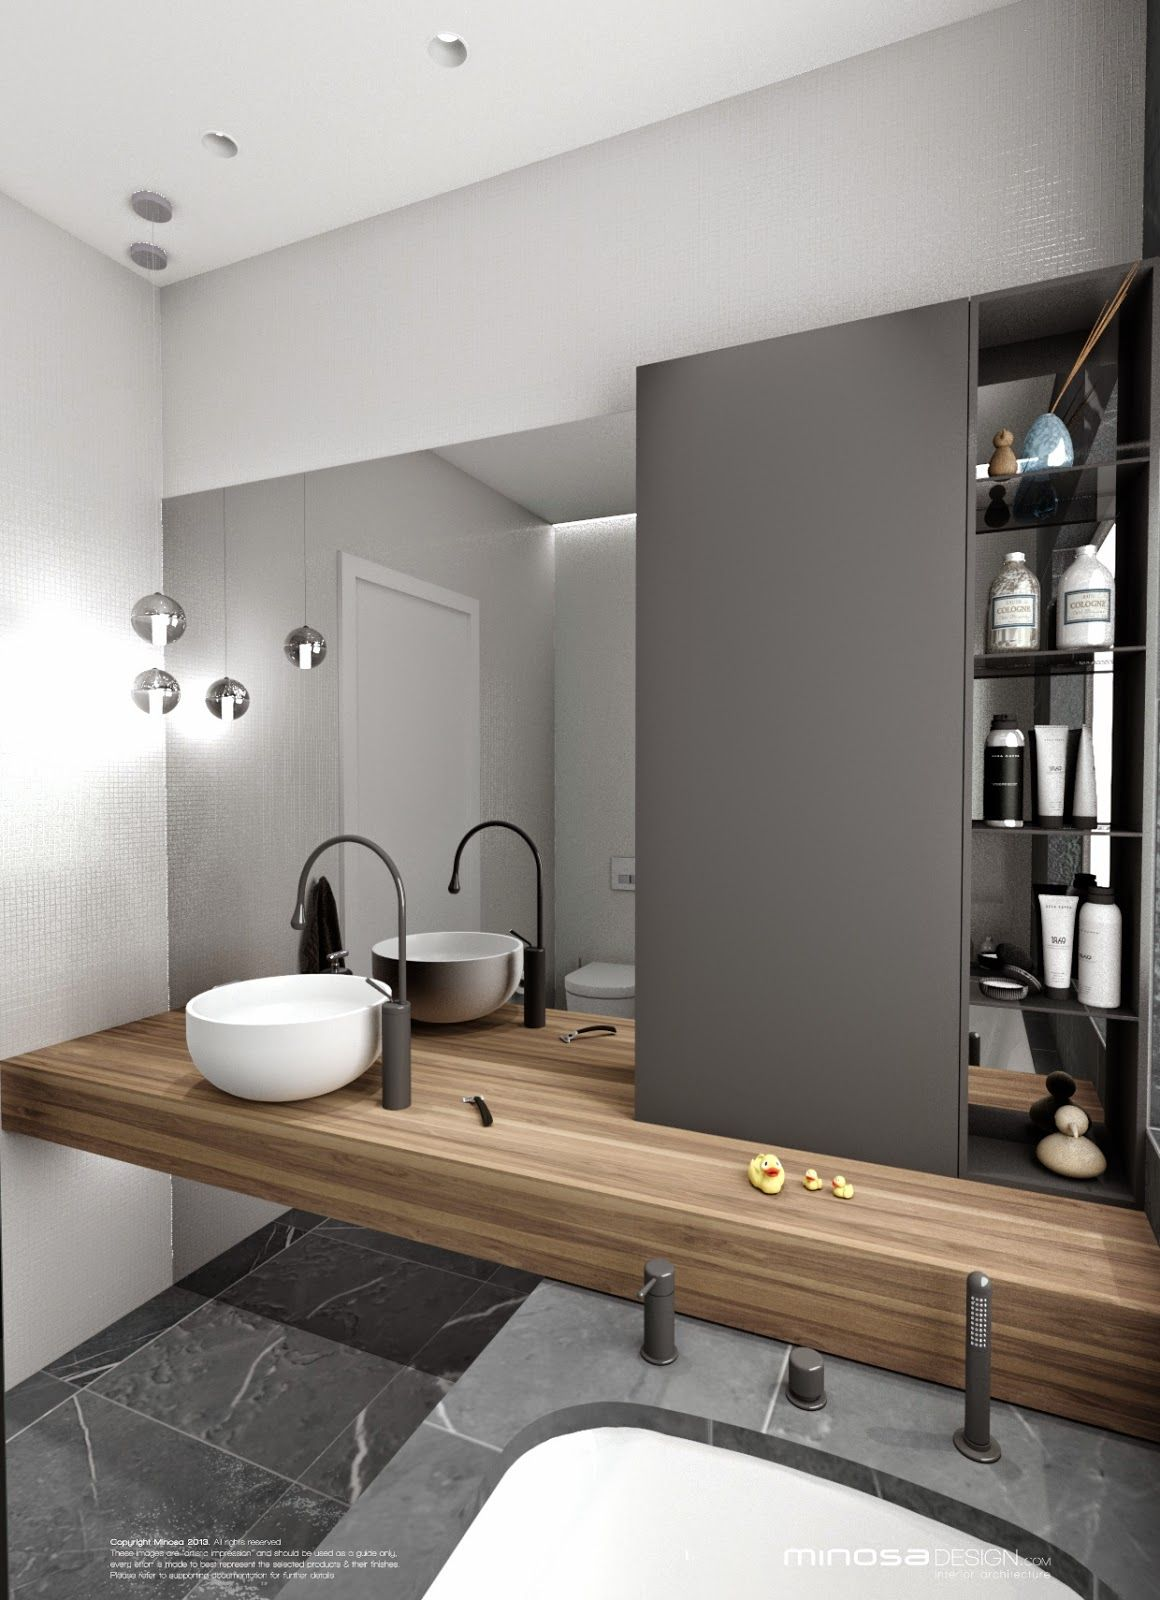 Wood Counter Grey Tile White Raised Bowl Sink Copper Fixtures Grey Cabinet Both Bathroom